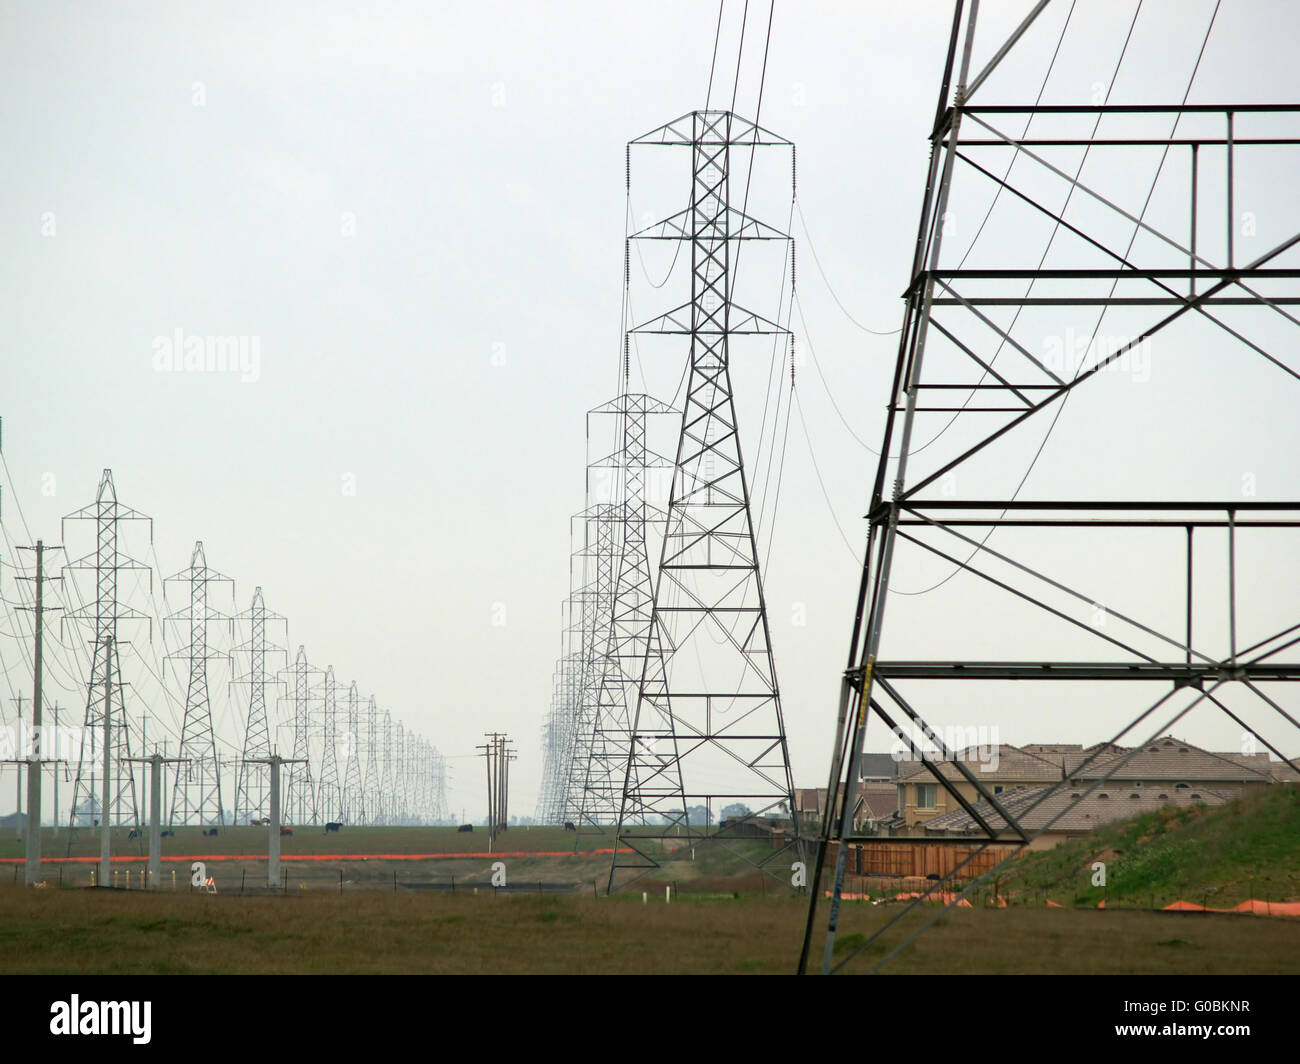 Power Lines With Poles Stock Photos & Power Lines With Poles Stock ...